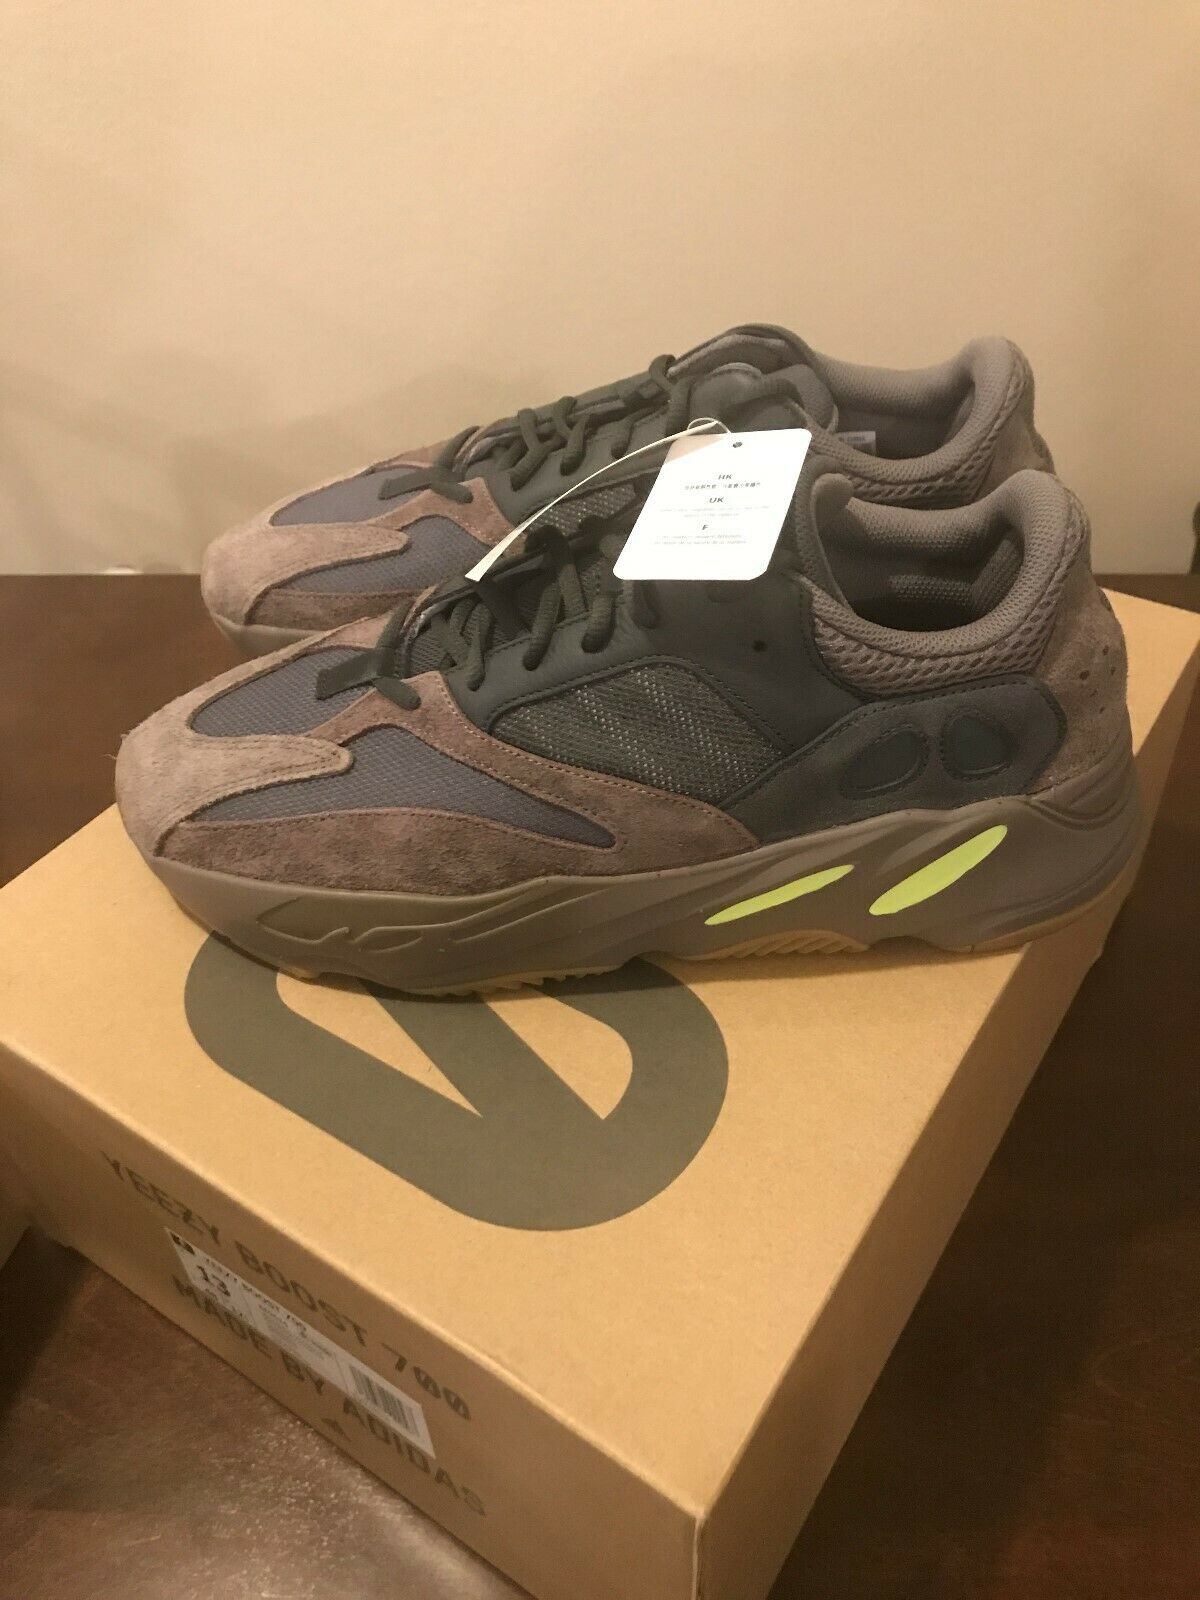 508333171 Adidas Yeezy Boost 700 MAUVE Size 13 m READY TO SHIP. Adidas yeezy boost  350 V2 ...